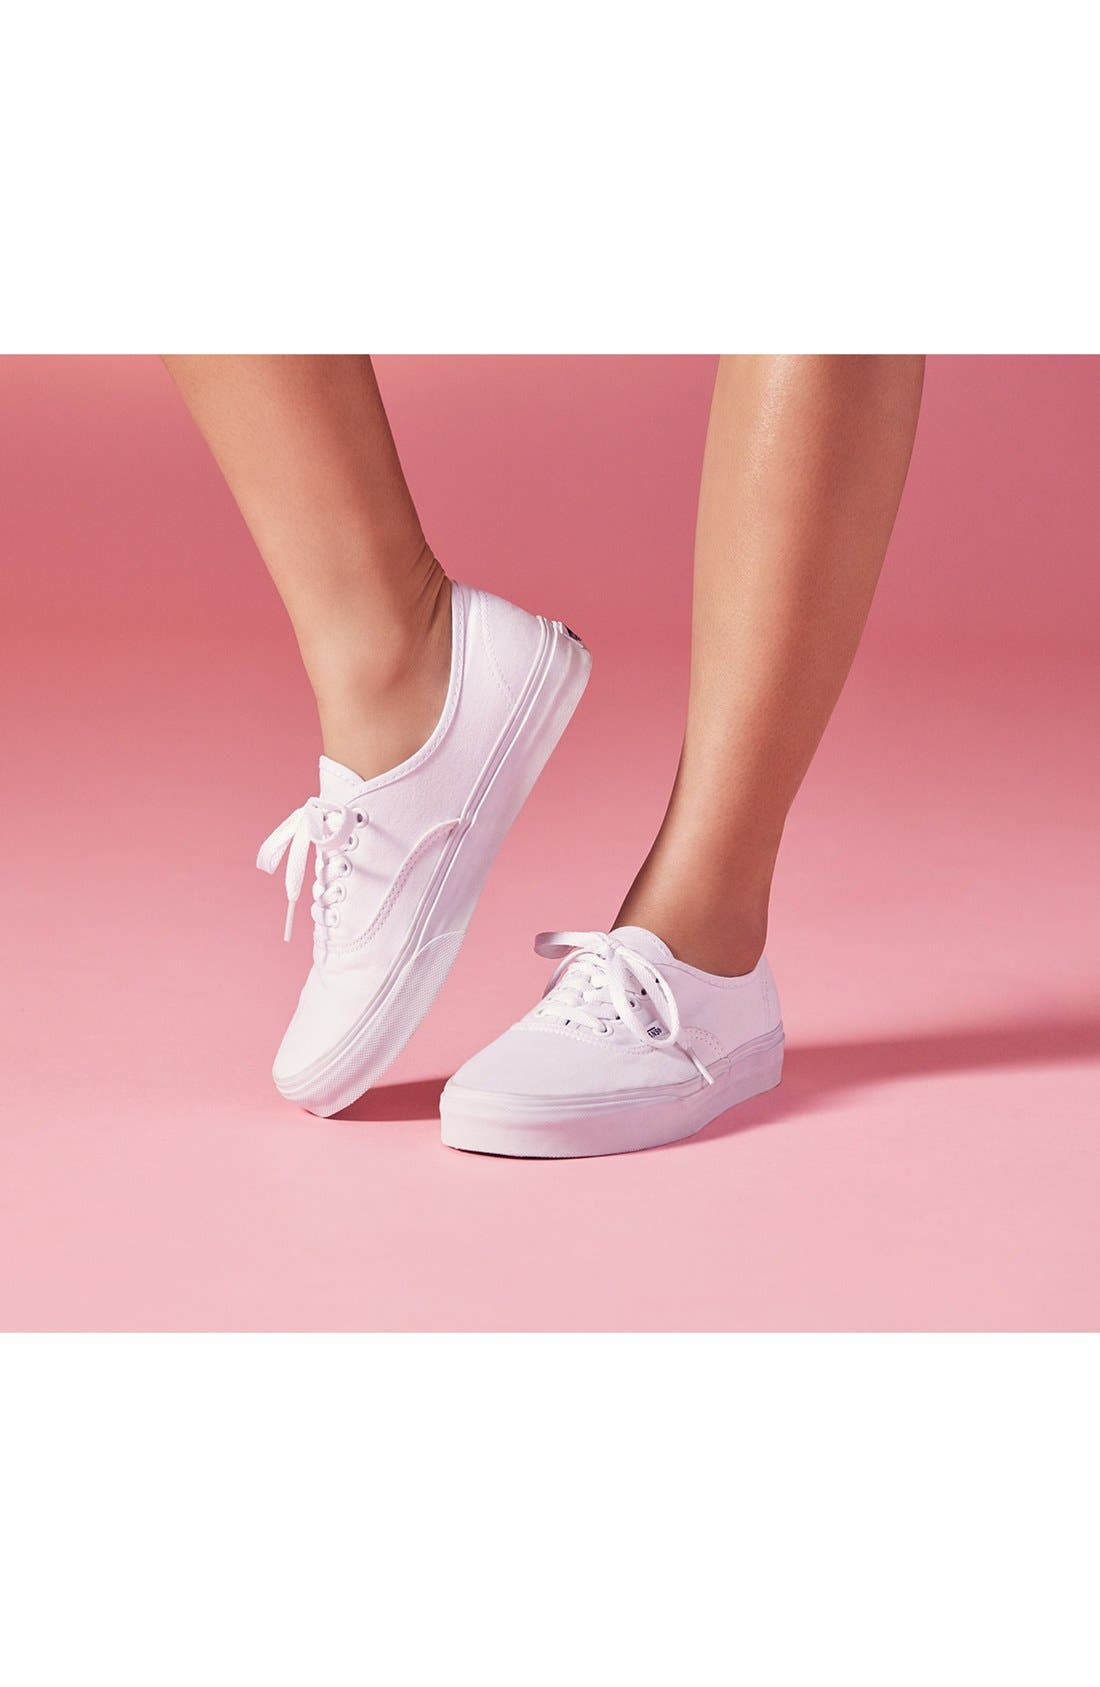 'Authentic' Sneaker,                             Alternate thumbnail 9, color,                             PINK LEMONADE/ MARSHMALLOW